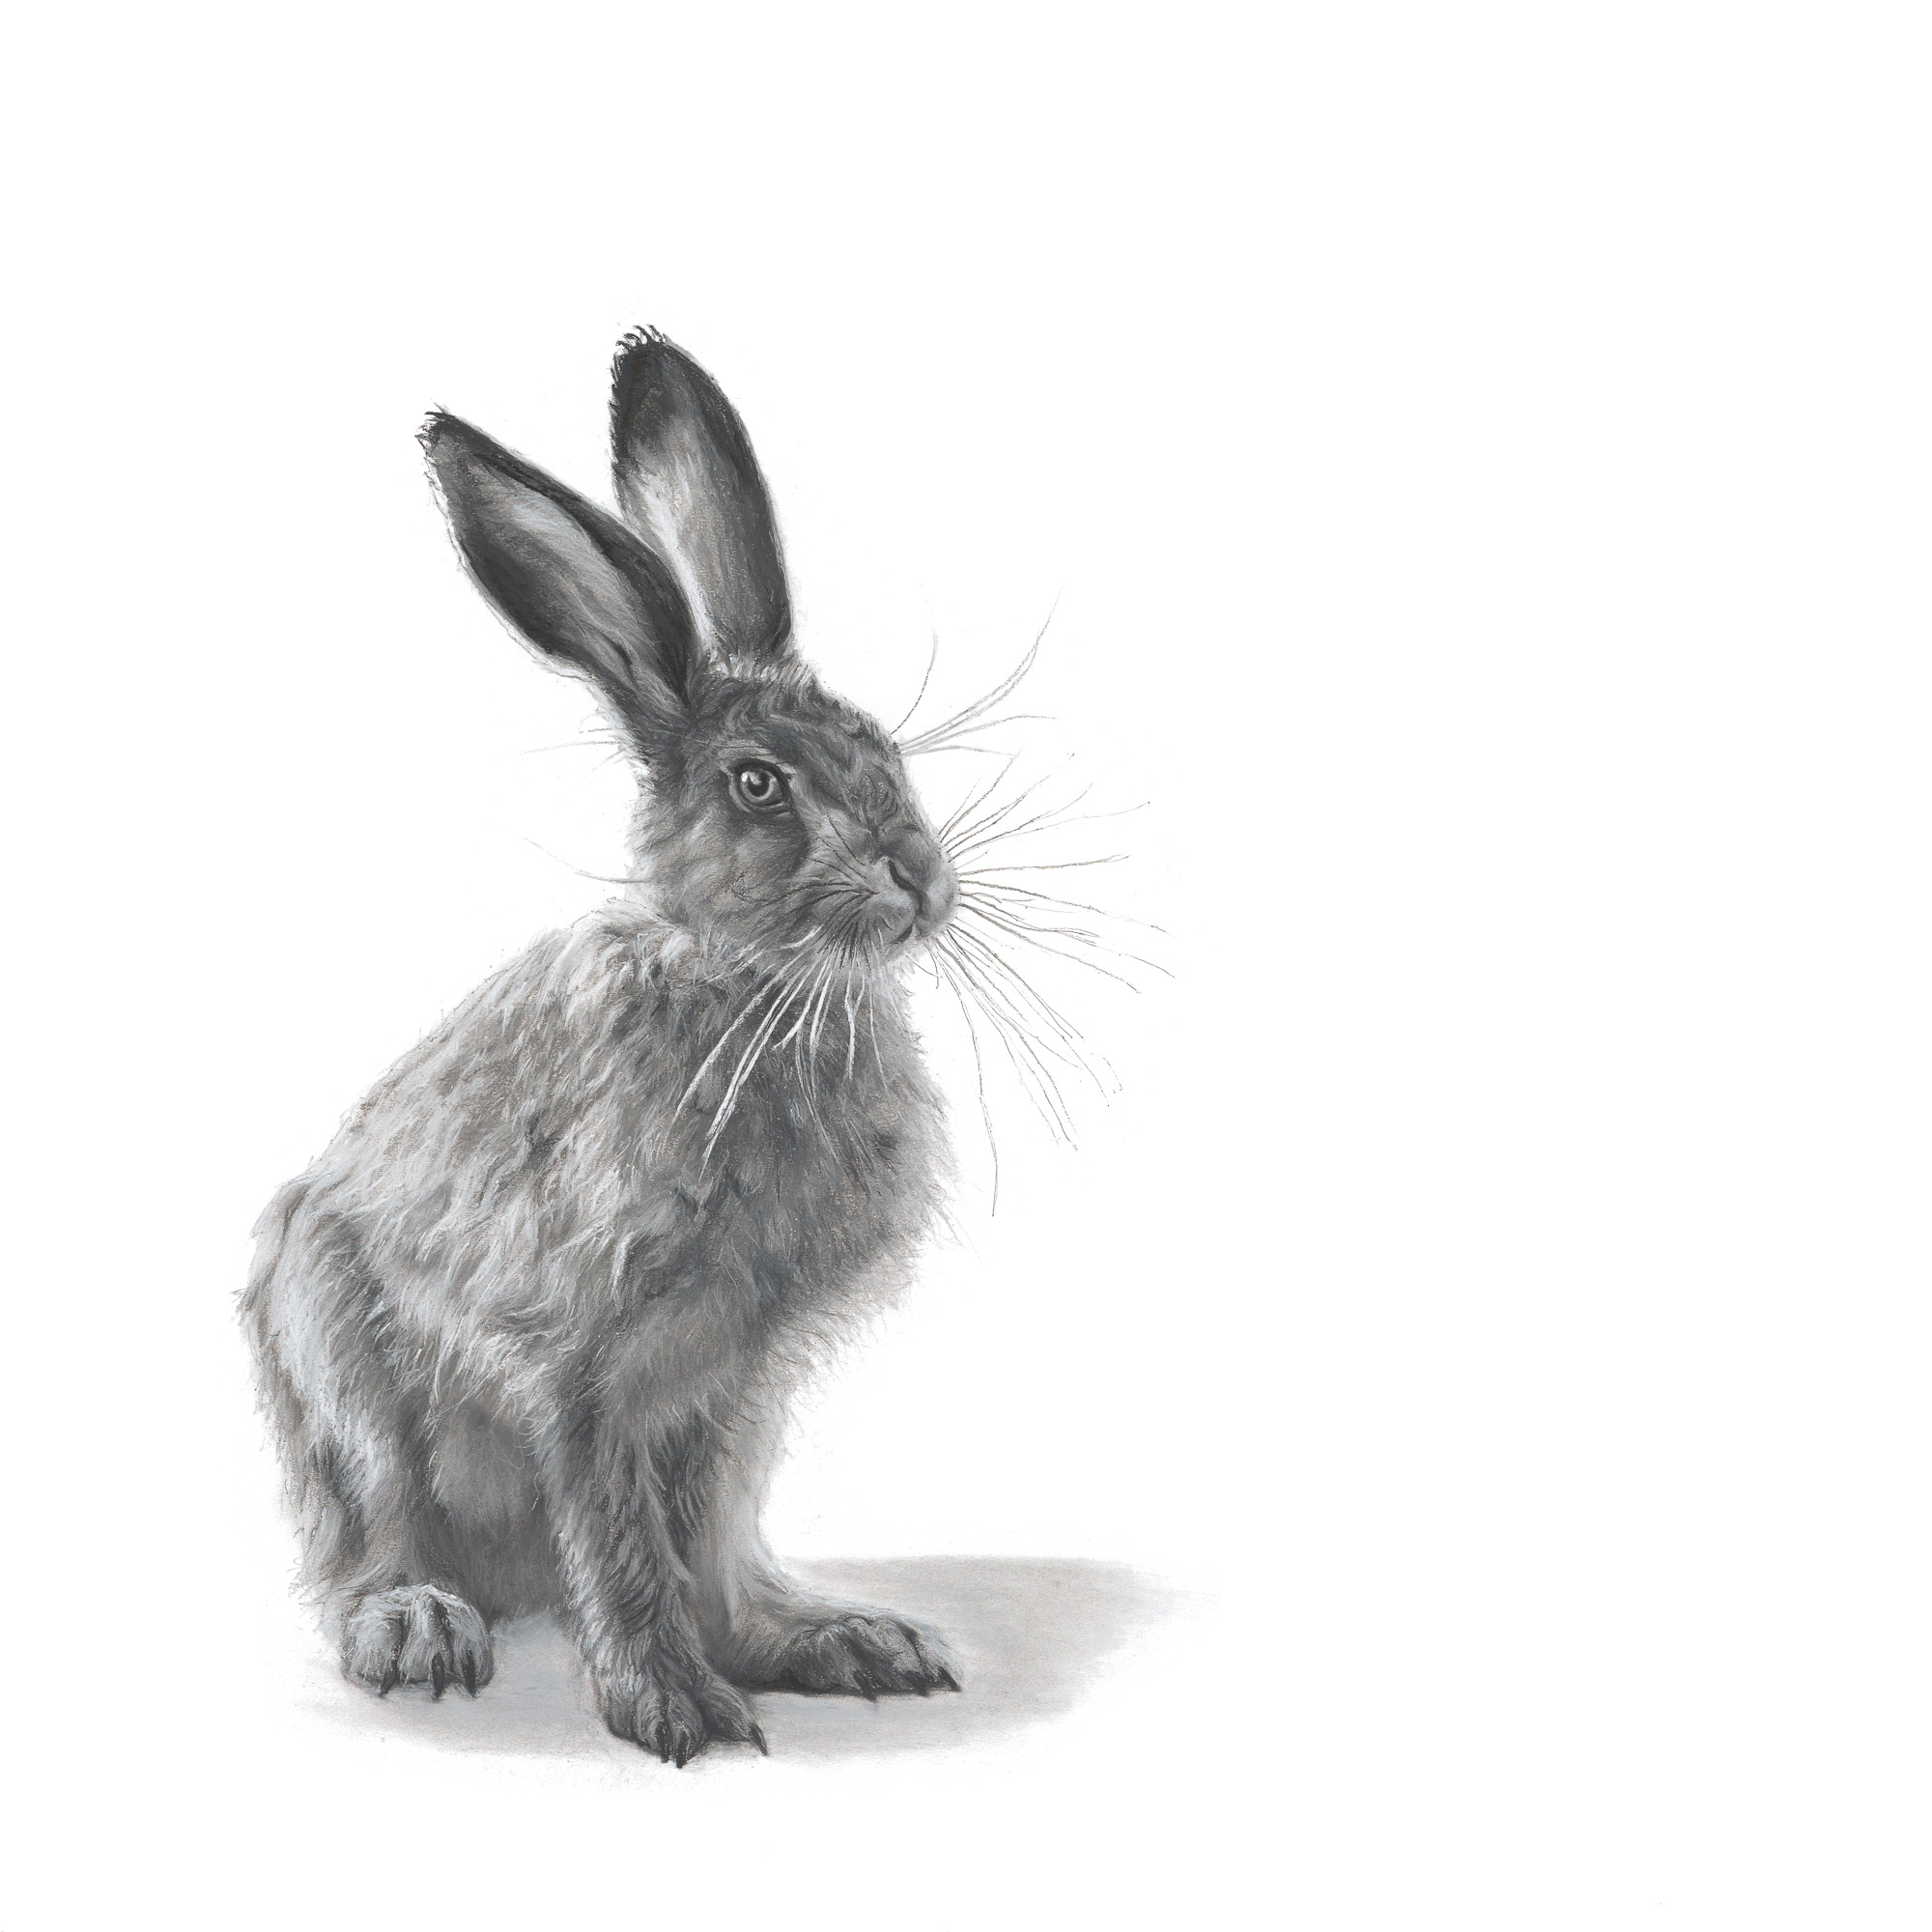 Young Hare = A Leveret